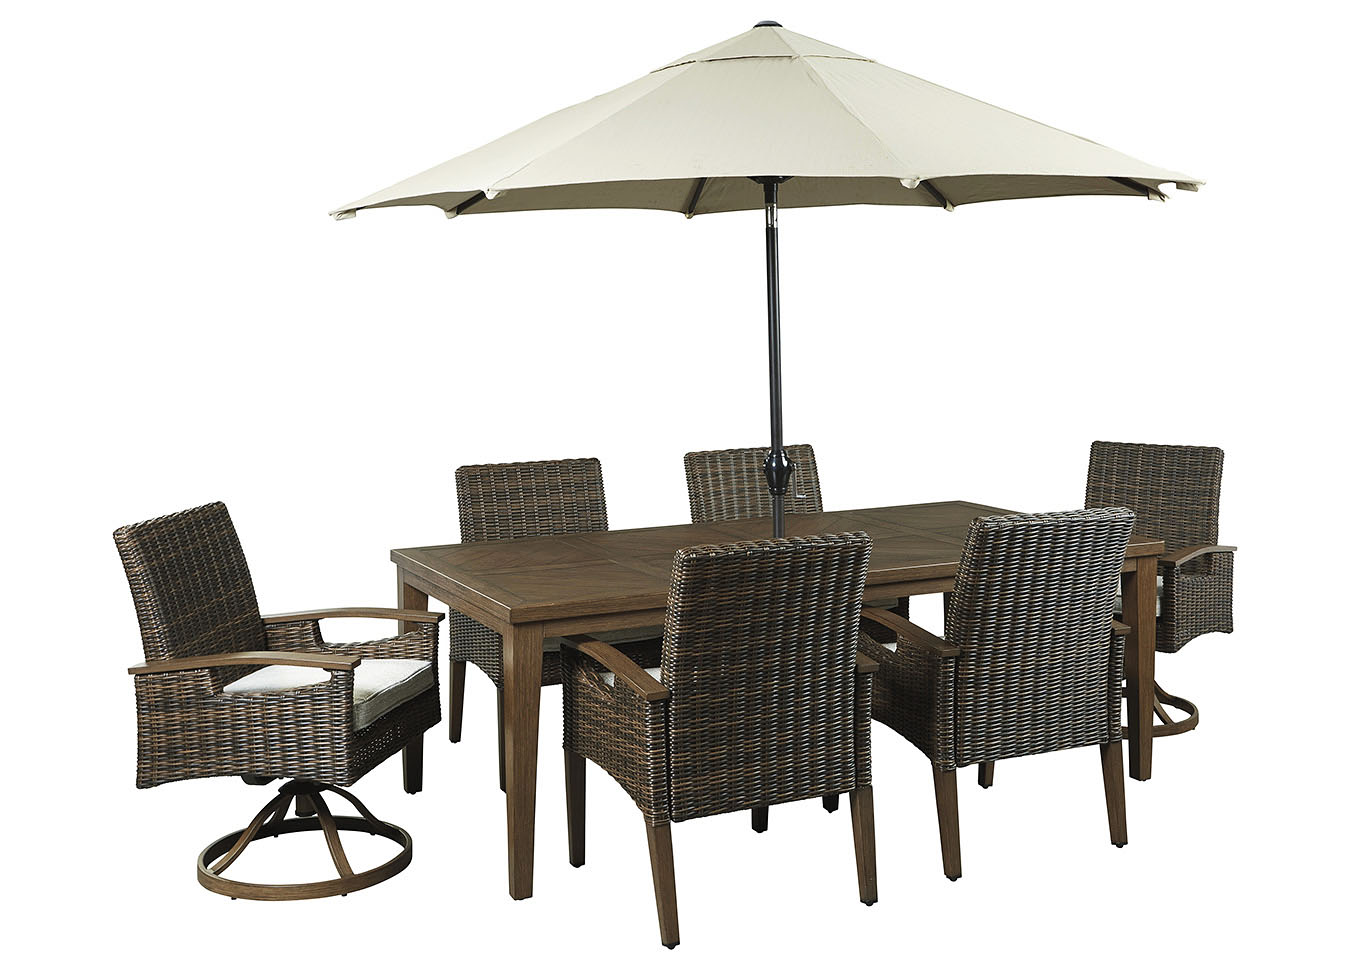 Paradise Trail Brown Dining Table w/4 Armed Chairs & 2 Swivel Chairs,Outdoor By Ashley